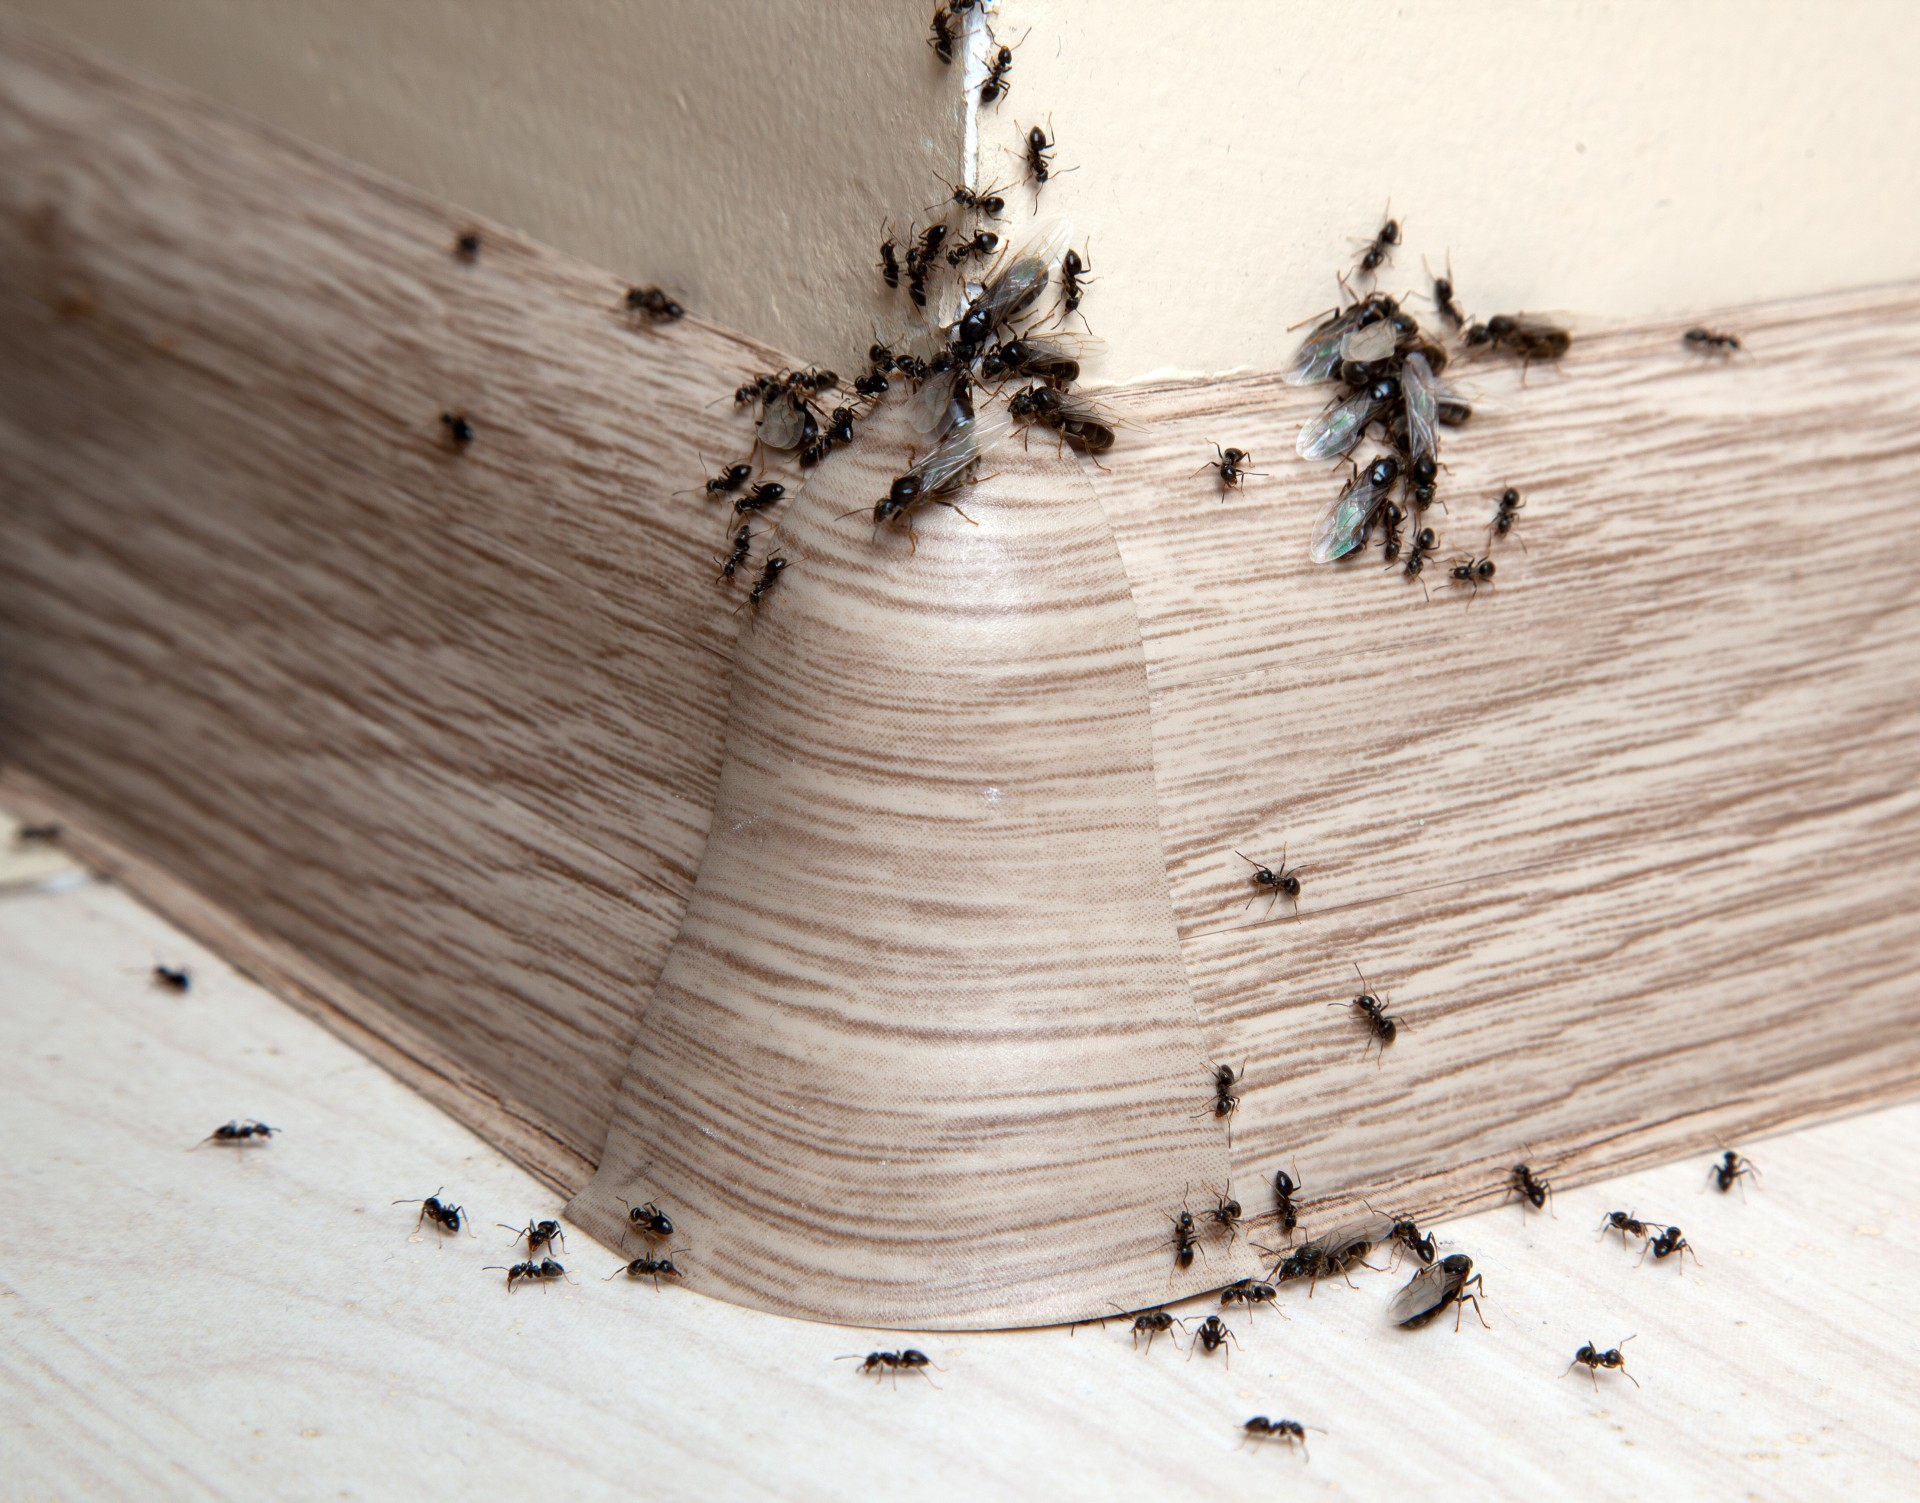 Ant Infestation, Pest Control in Rickmansworth, Chorleywood, Croxley Green, WD3. Call Now 020 8166 9746